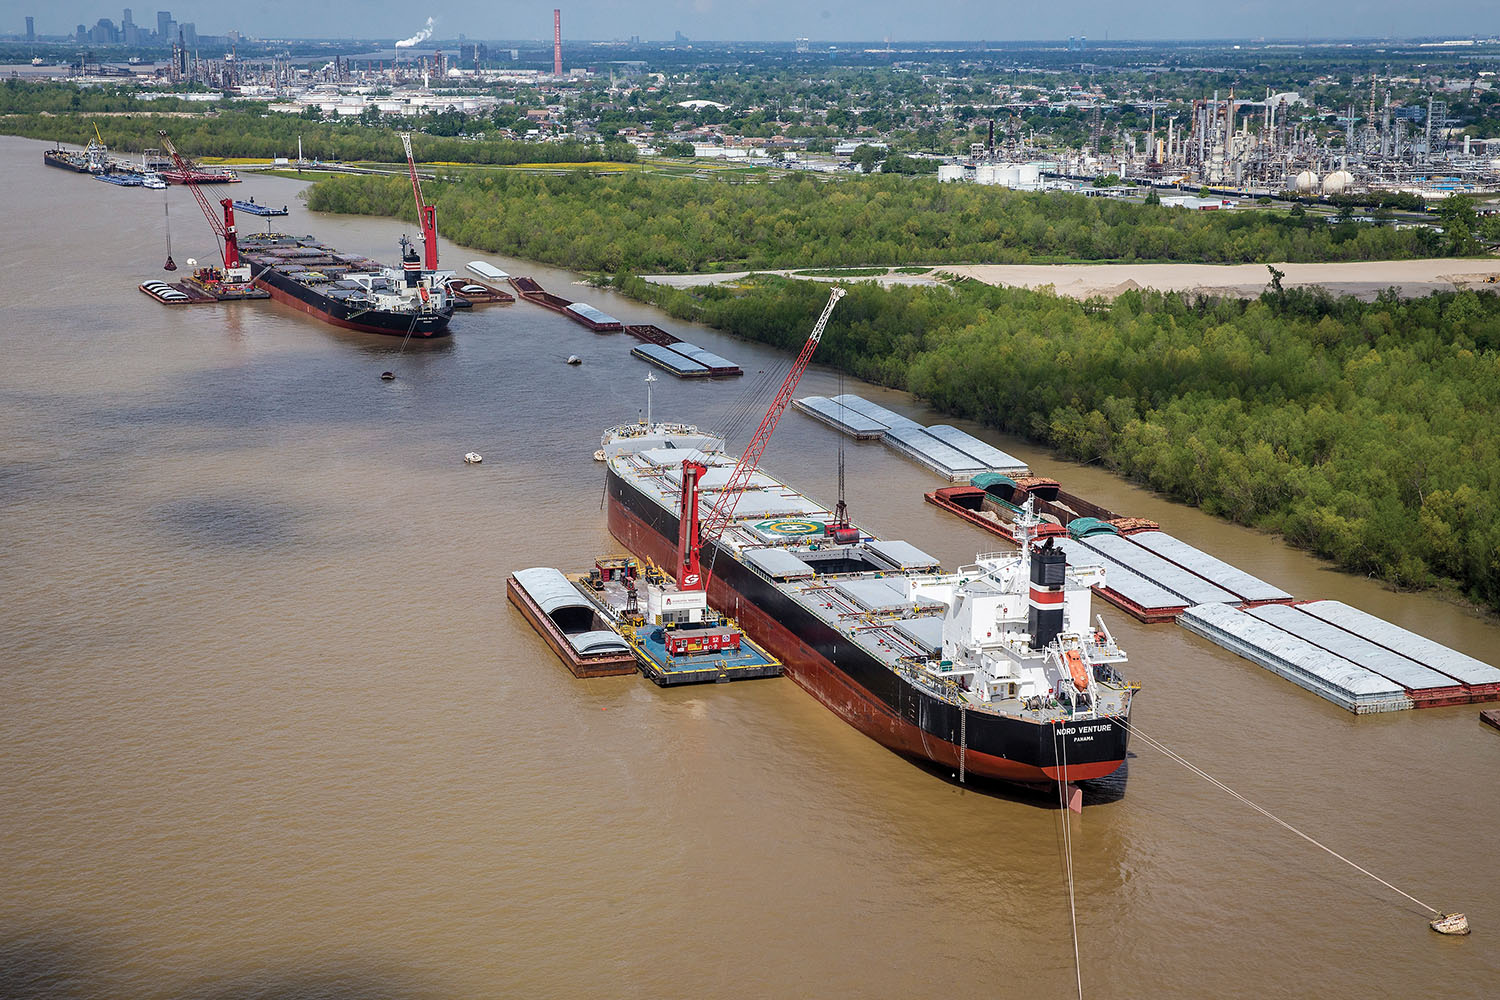 A pair of Associated Terminal's floating Gottwald cranes transfer cargo between barge and ship near Violet, La., on the Mississippi River within the Port of St. Bernard. (Photo courtesy of Associated Terminals)